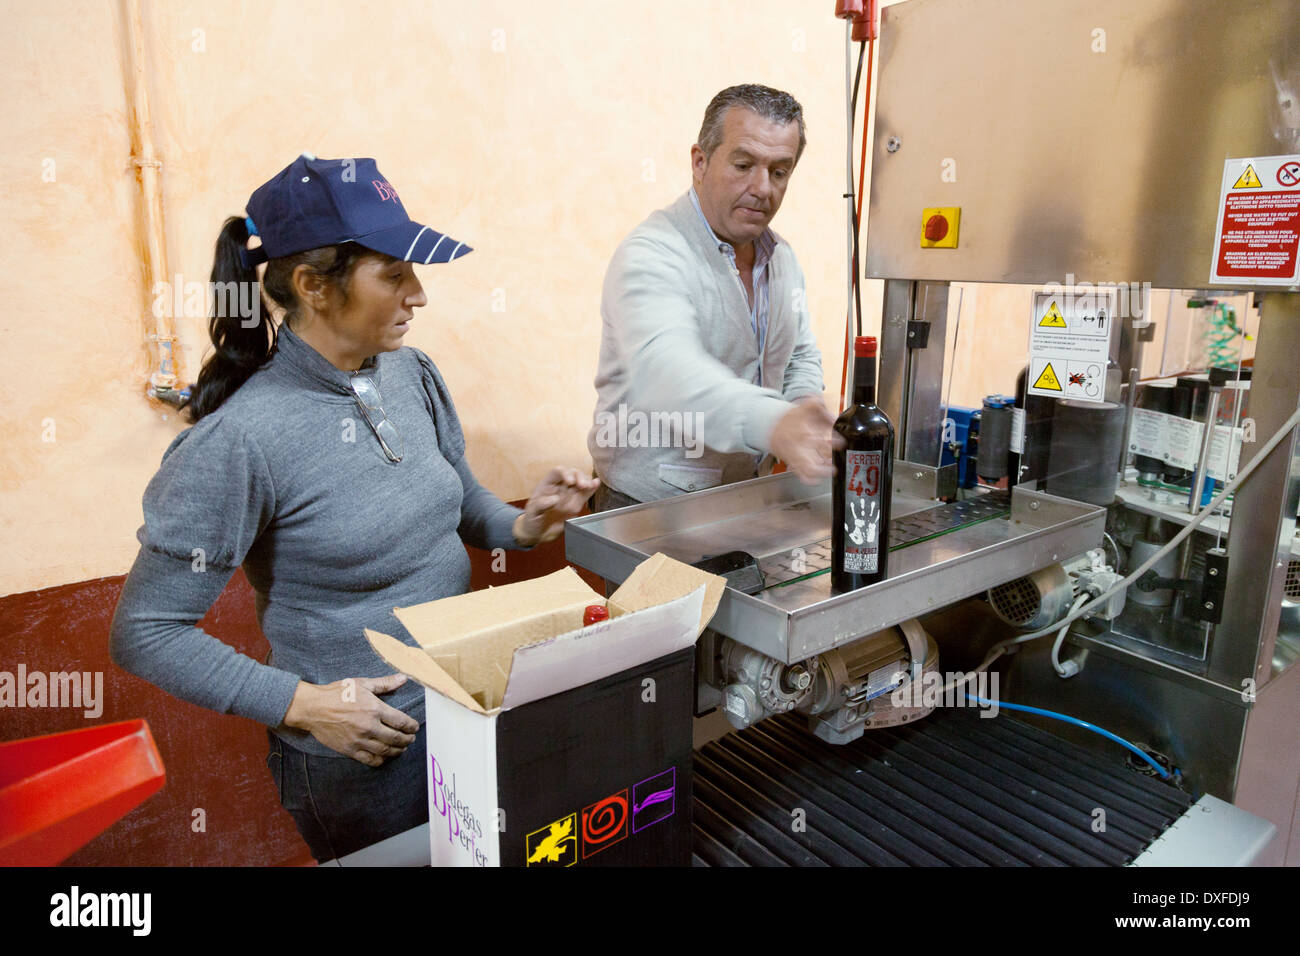 Spanish wine production line - labelling and boxing of wine bottles, Perfer Vineyard, Almeria, Andalusia, Spain Europe - Stock Image